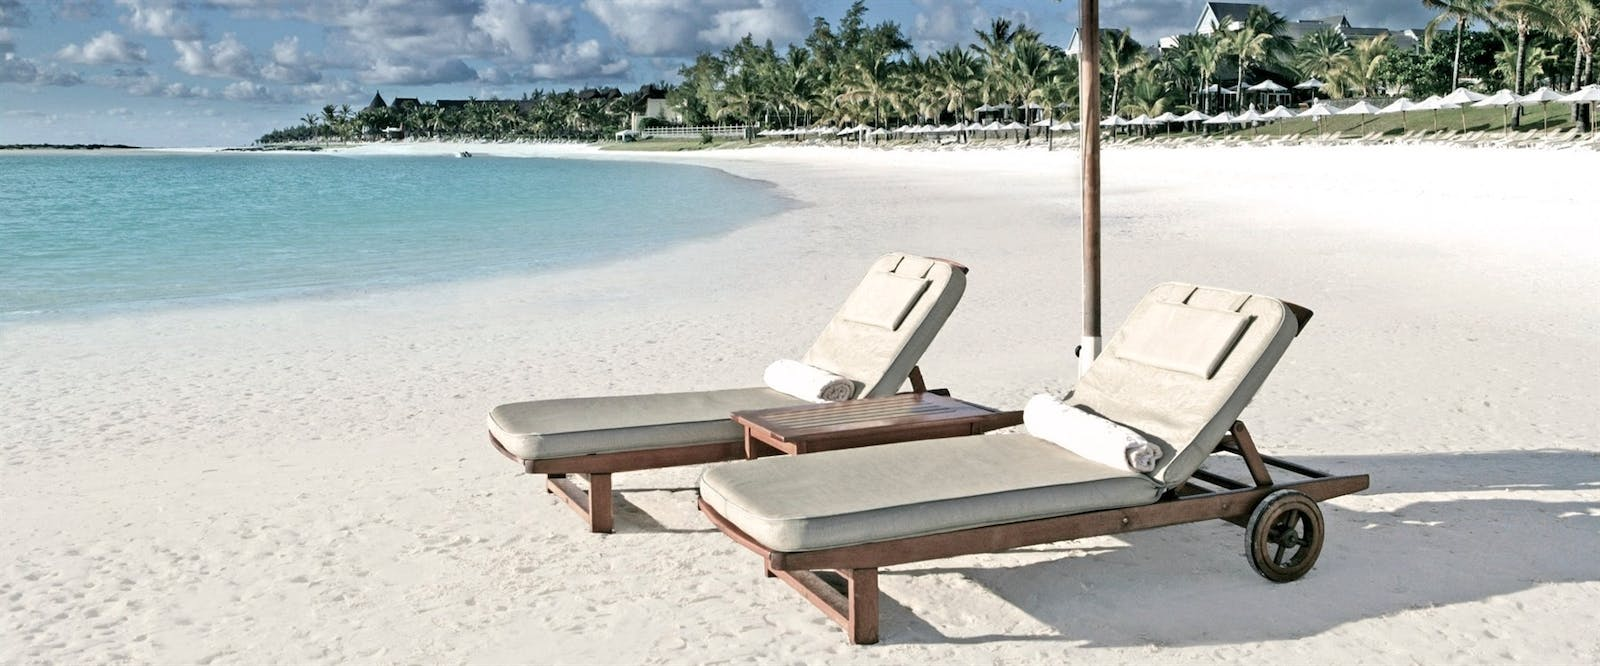 Sun Loungers on Beach at The Residence Mauritius, Indian Ocean